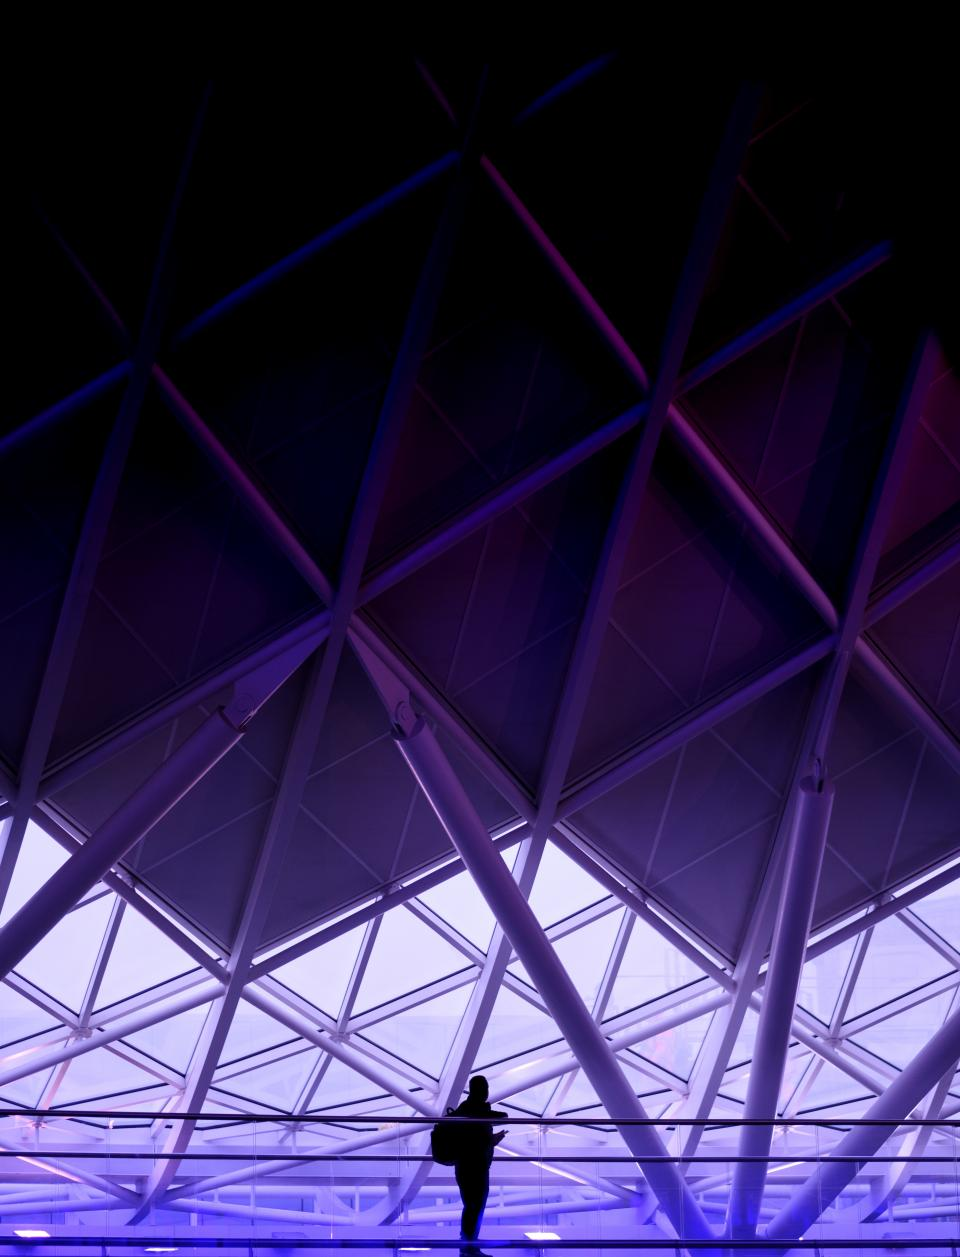 architecture building infrastructure purple light people travel alone silhouette